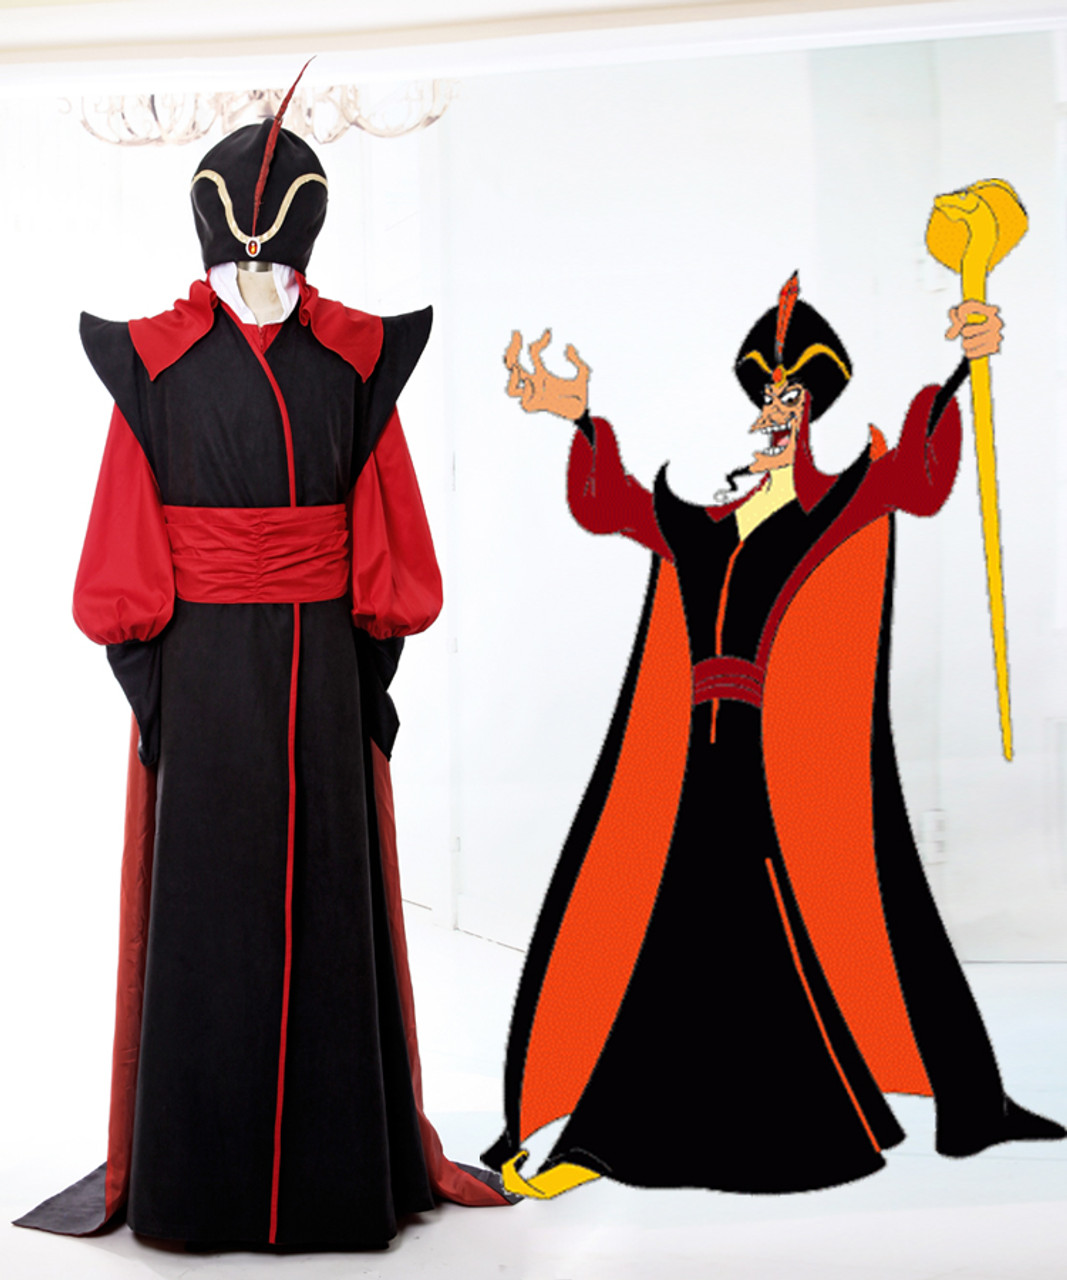 Aladdin Disney Cosplay Jafar Costume Set